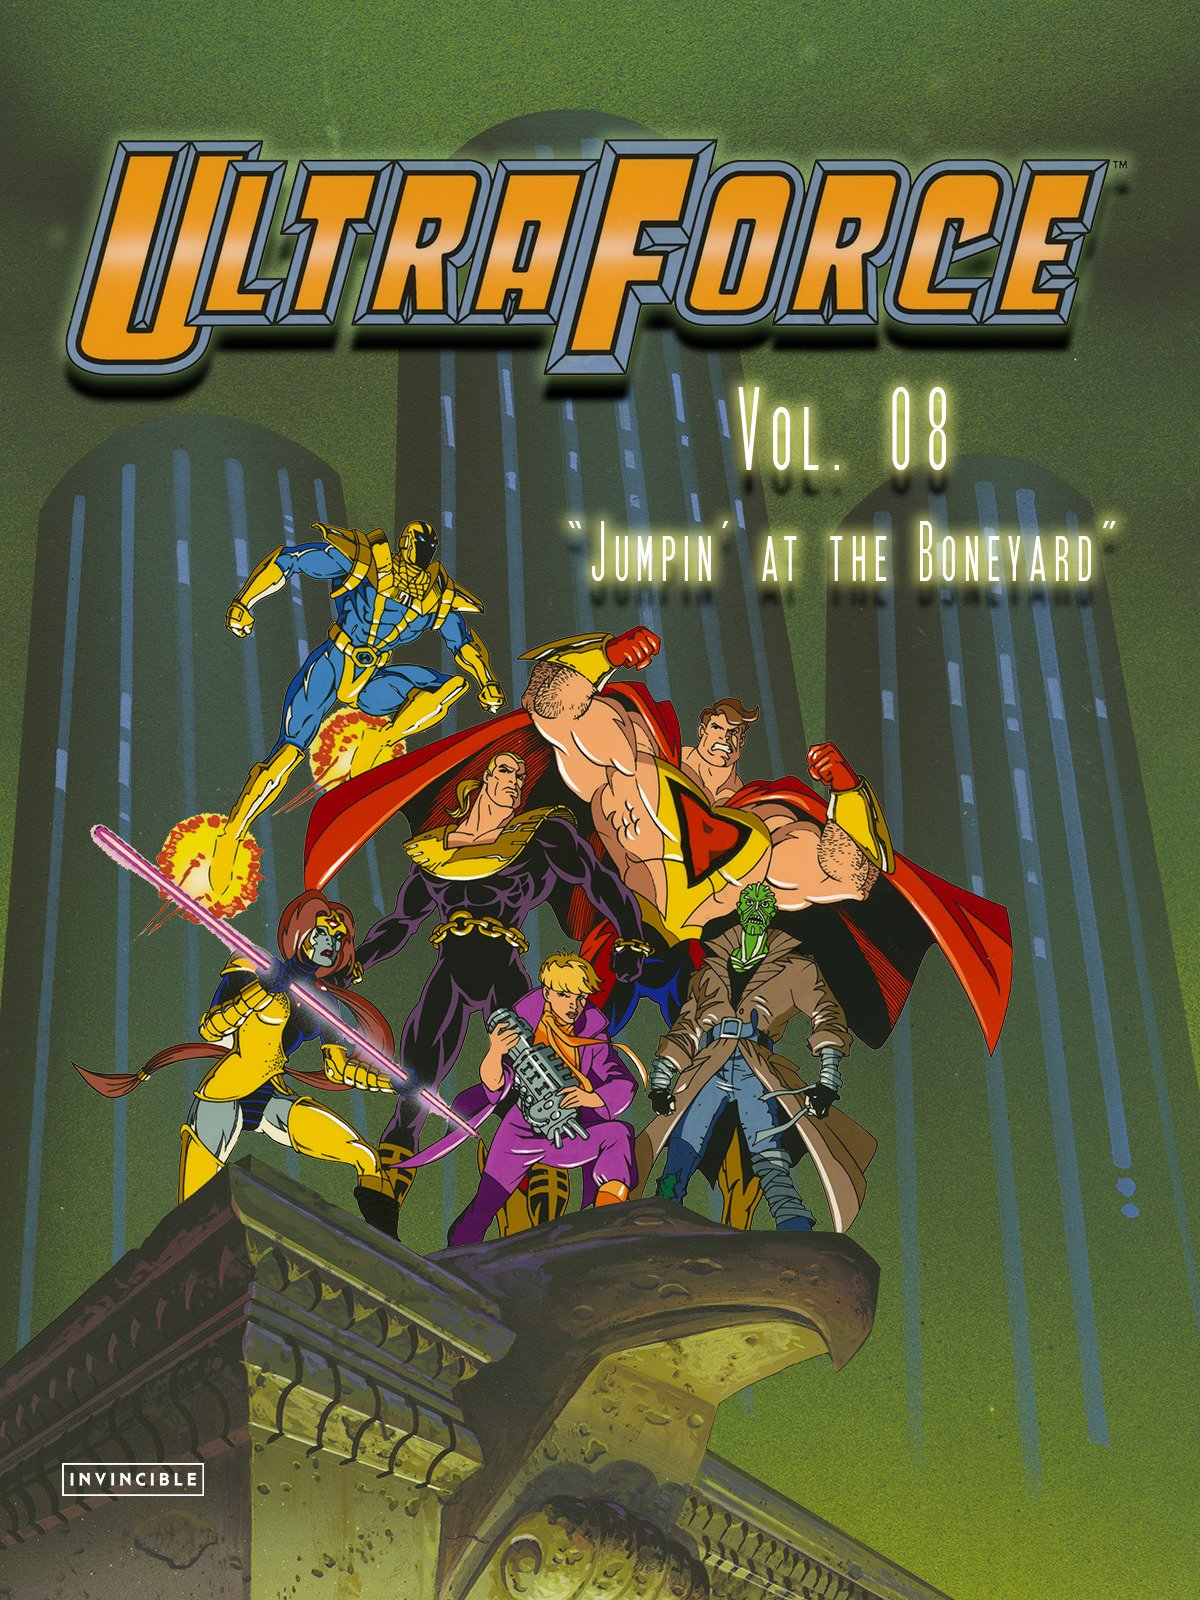 "Ultraforce Vol. 08""Jumpin' at the Boneyard"""